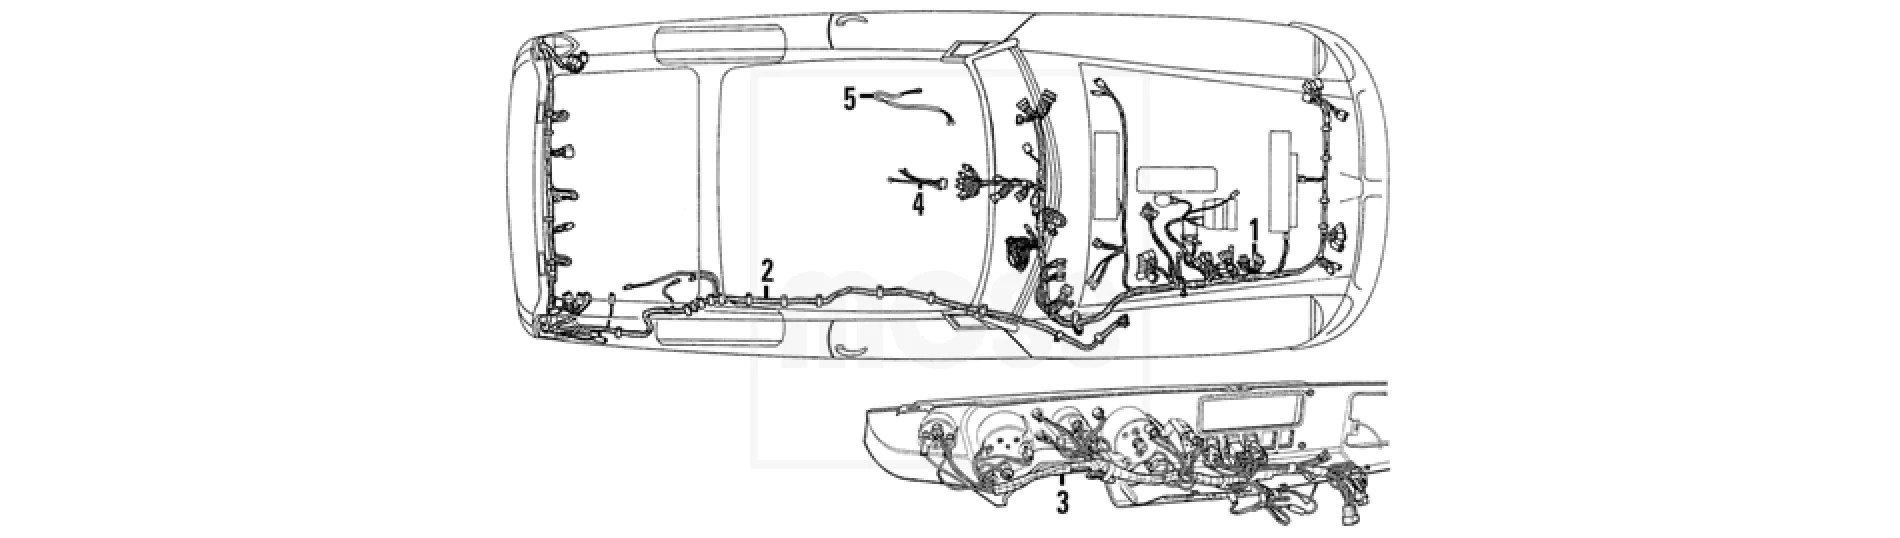 small resolution of mgb gt wiring harness wiring diagram datasource 1972 mgb wiring harness